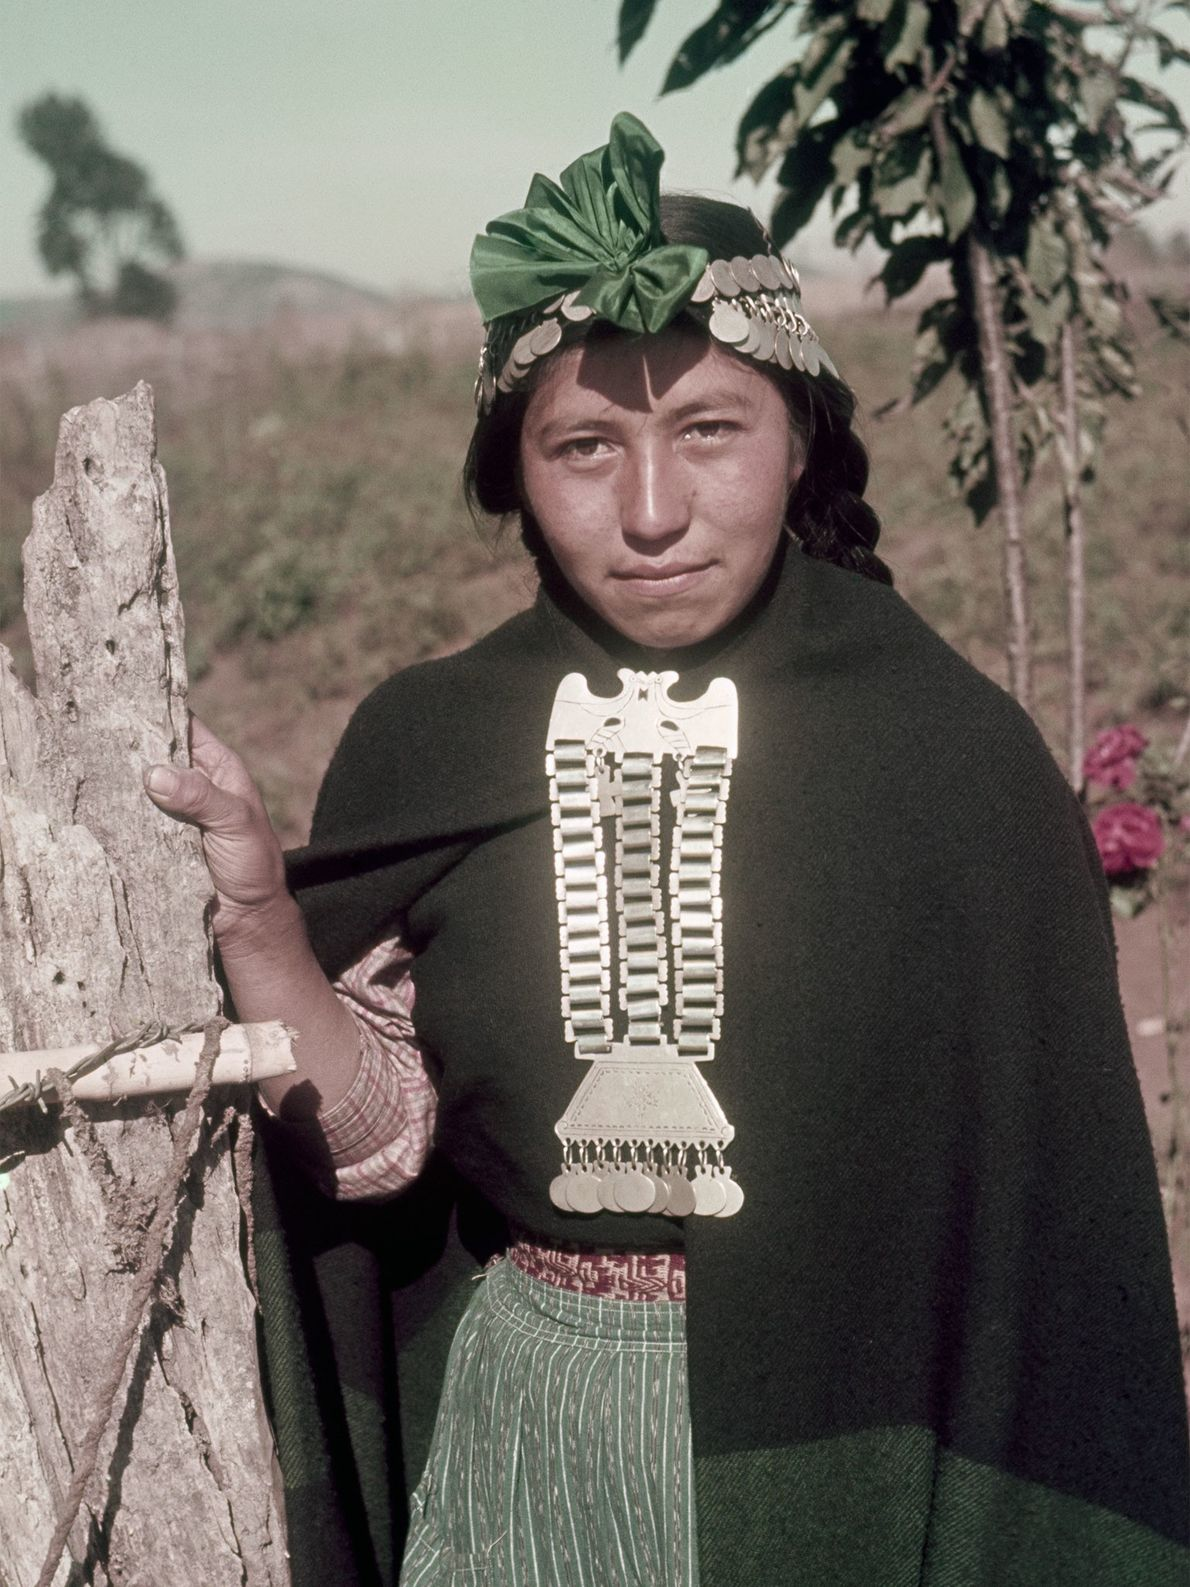 An Araucanian woman from Chile wears elaborate silver pieces as jewelry and headpiece adornments.